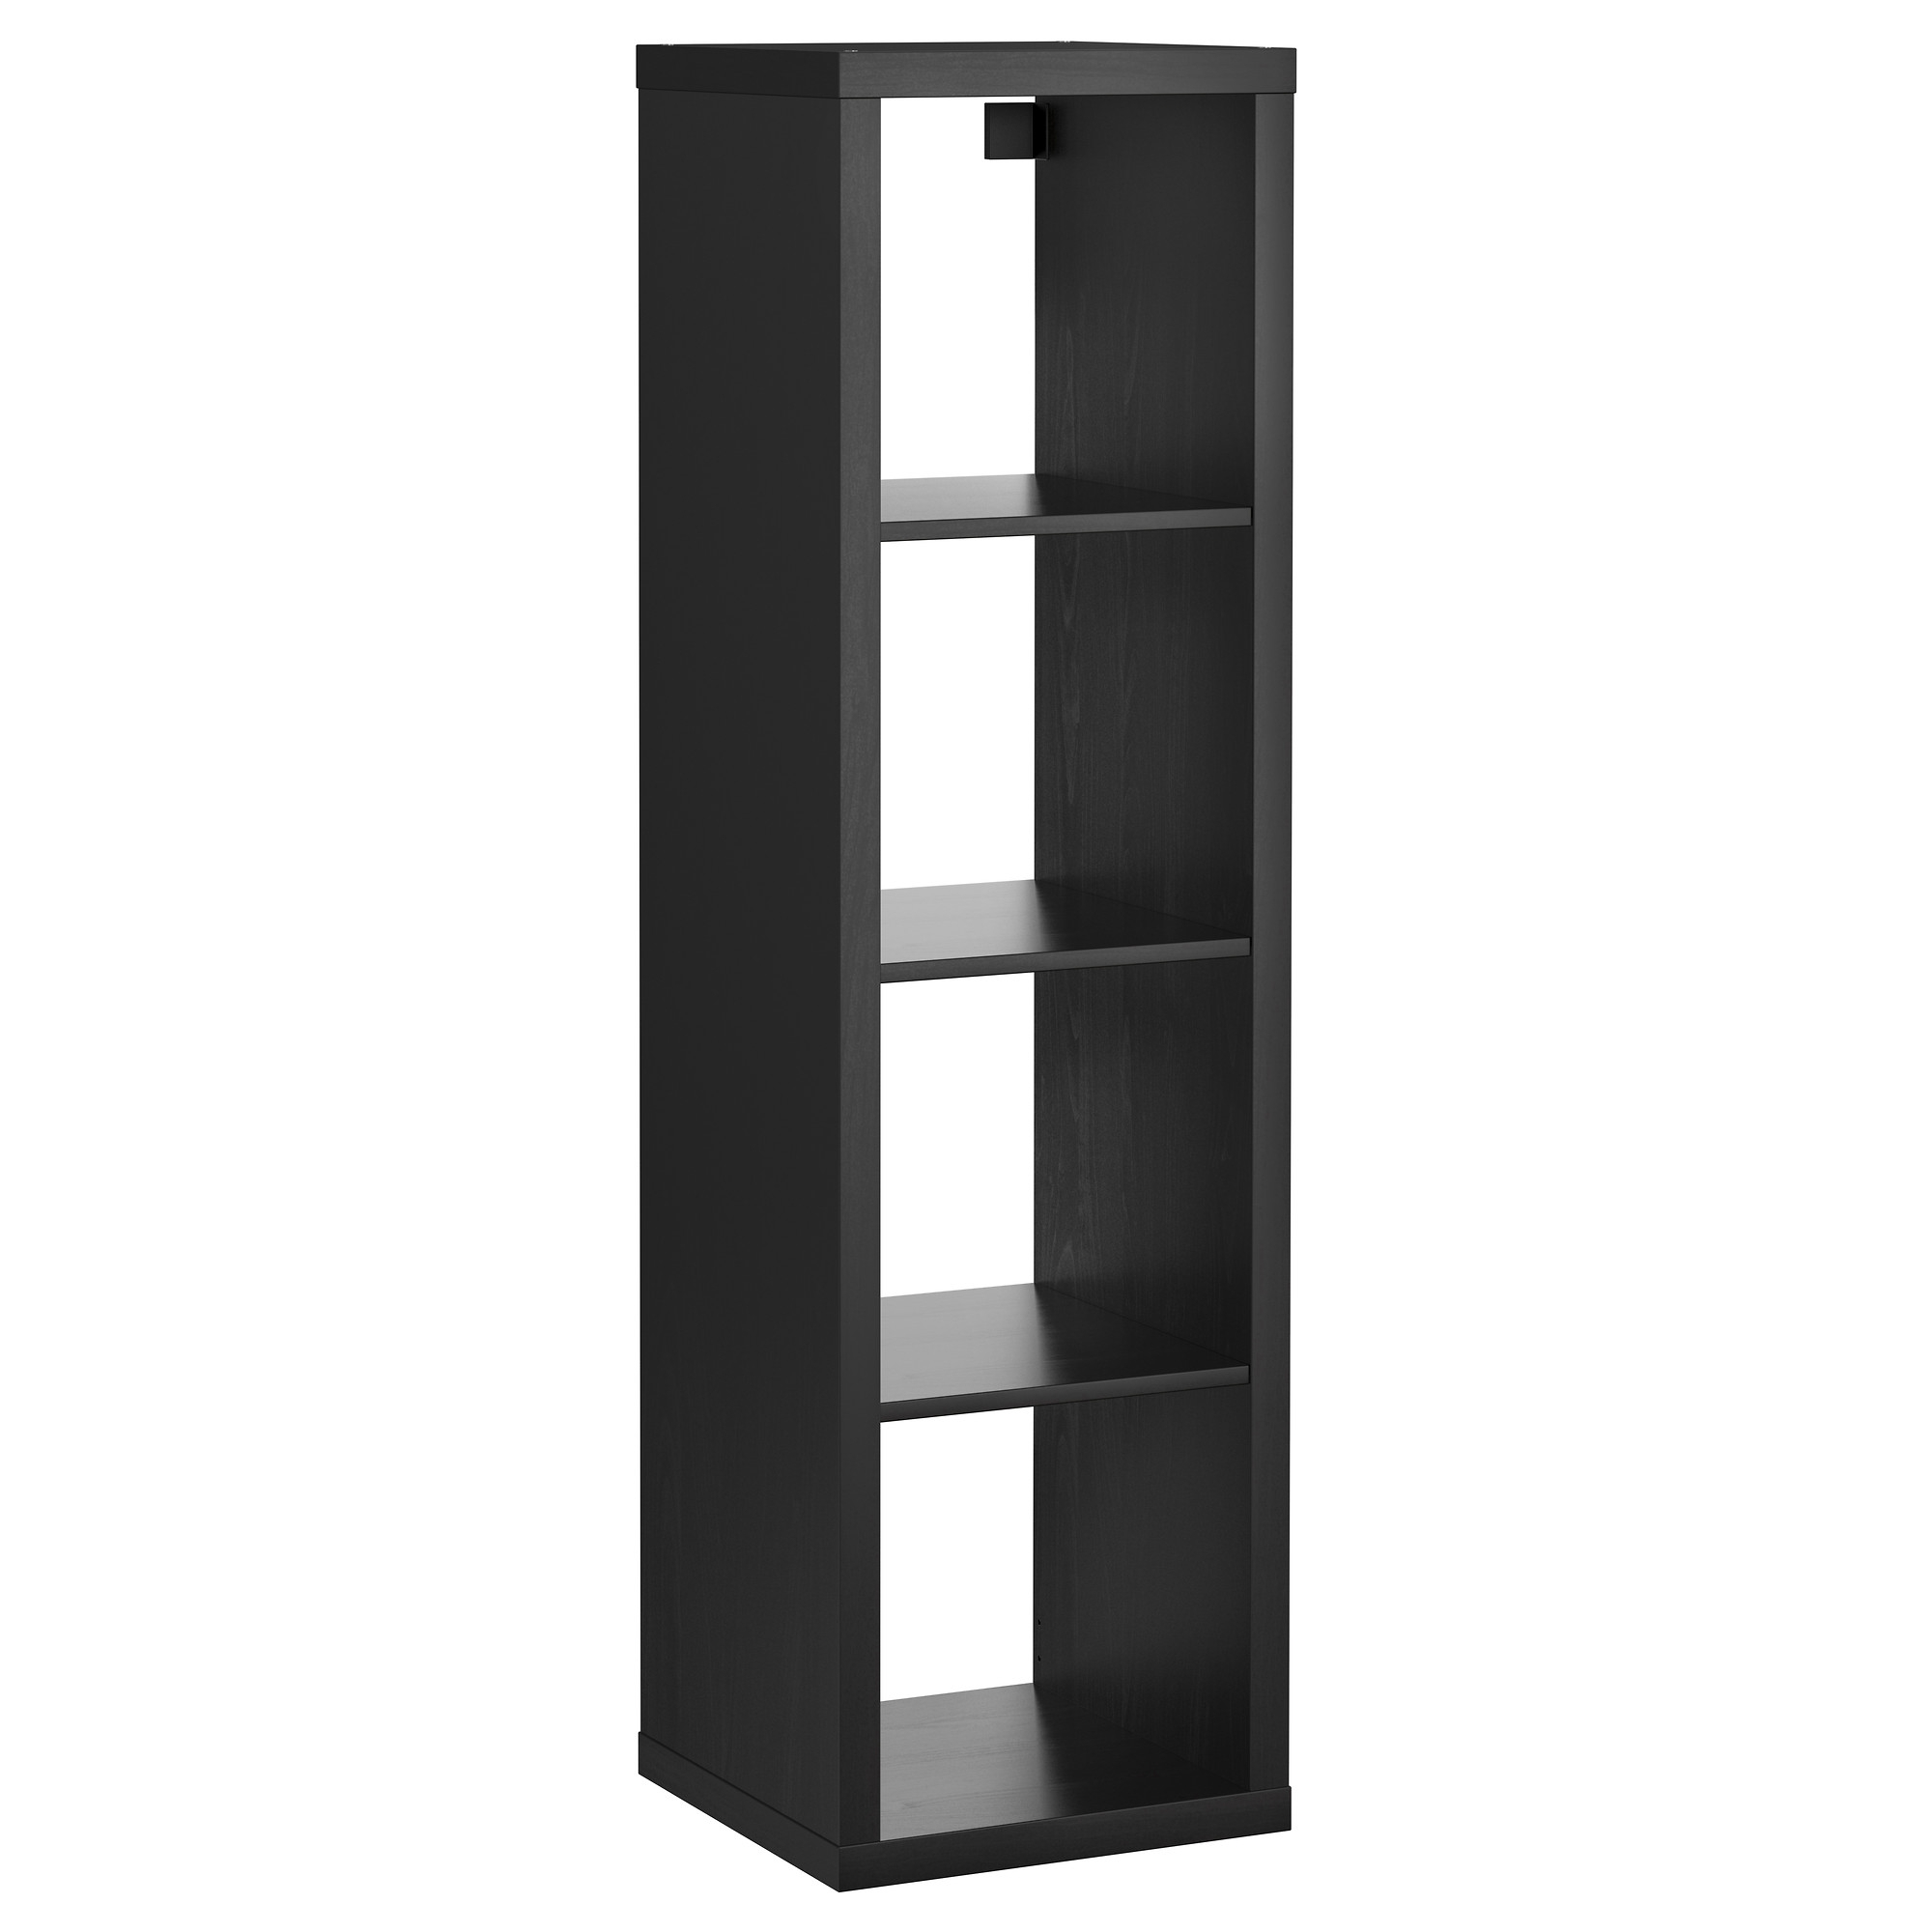 Kallax Shelving Unit Black Brown 42x147 Cm – Ikea With Most Recent Ikea Kallax Bookcases (View 10 of 15)